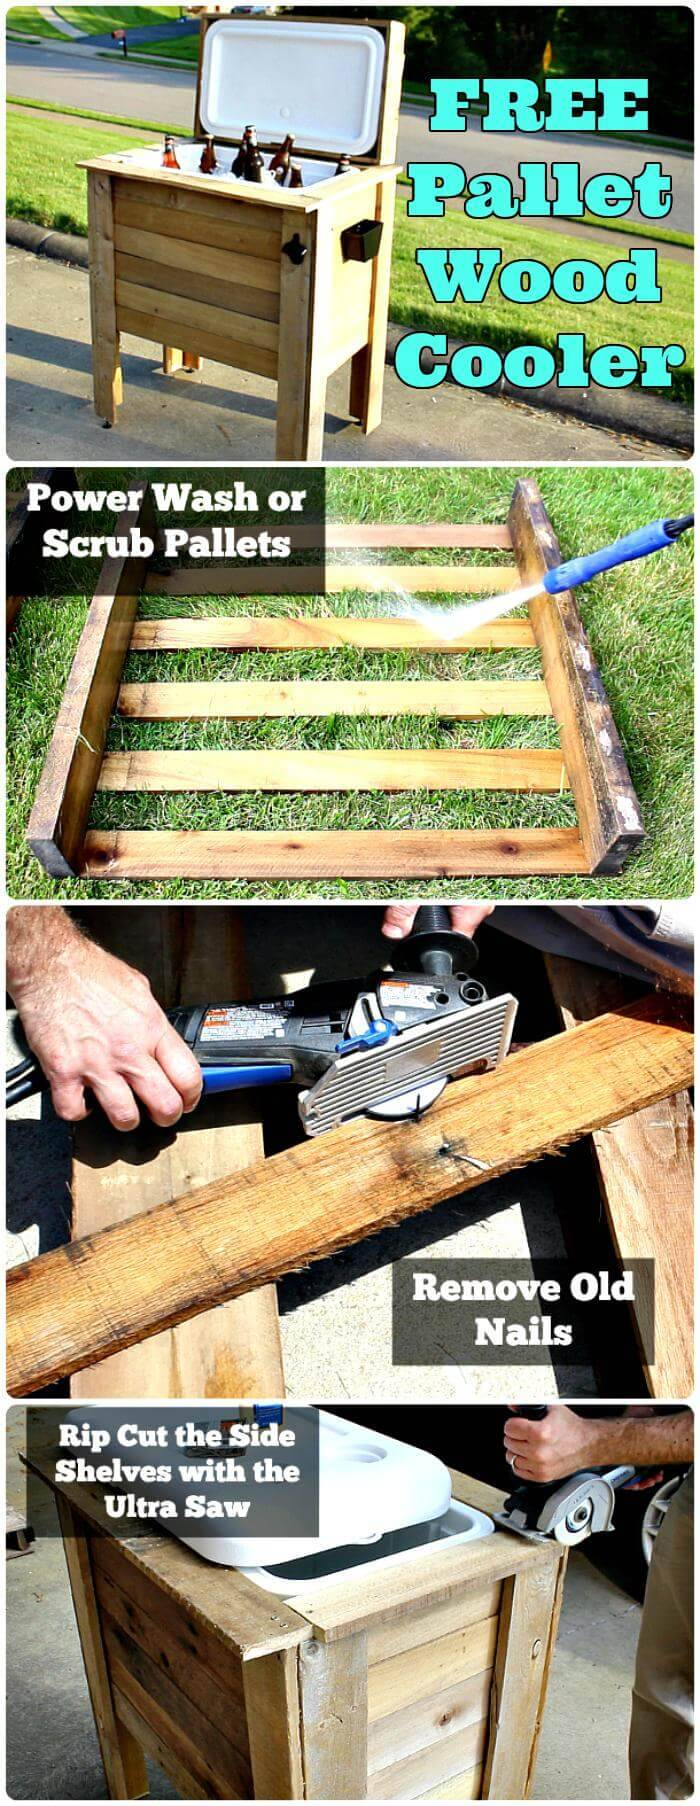 DIY Pallet Cooler Project and Tutorial